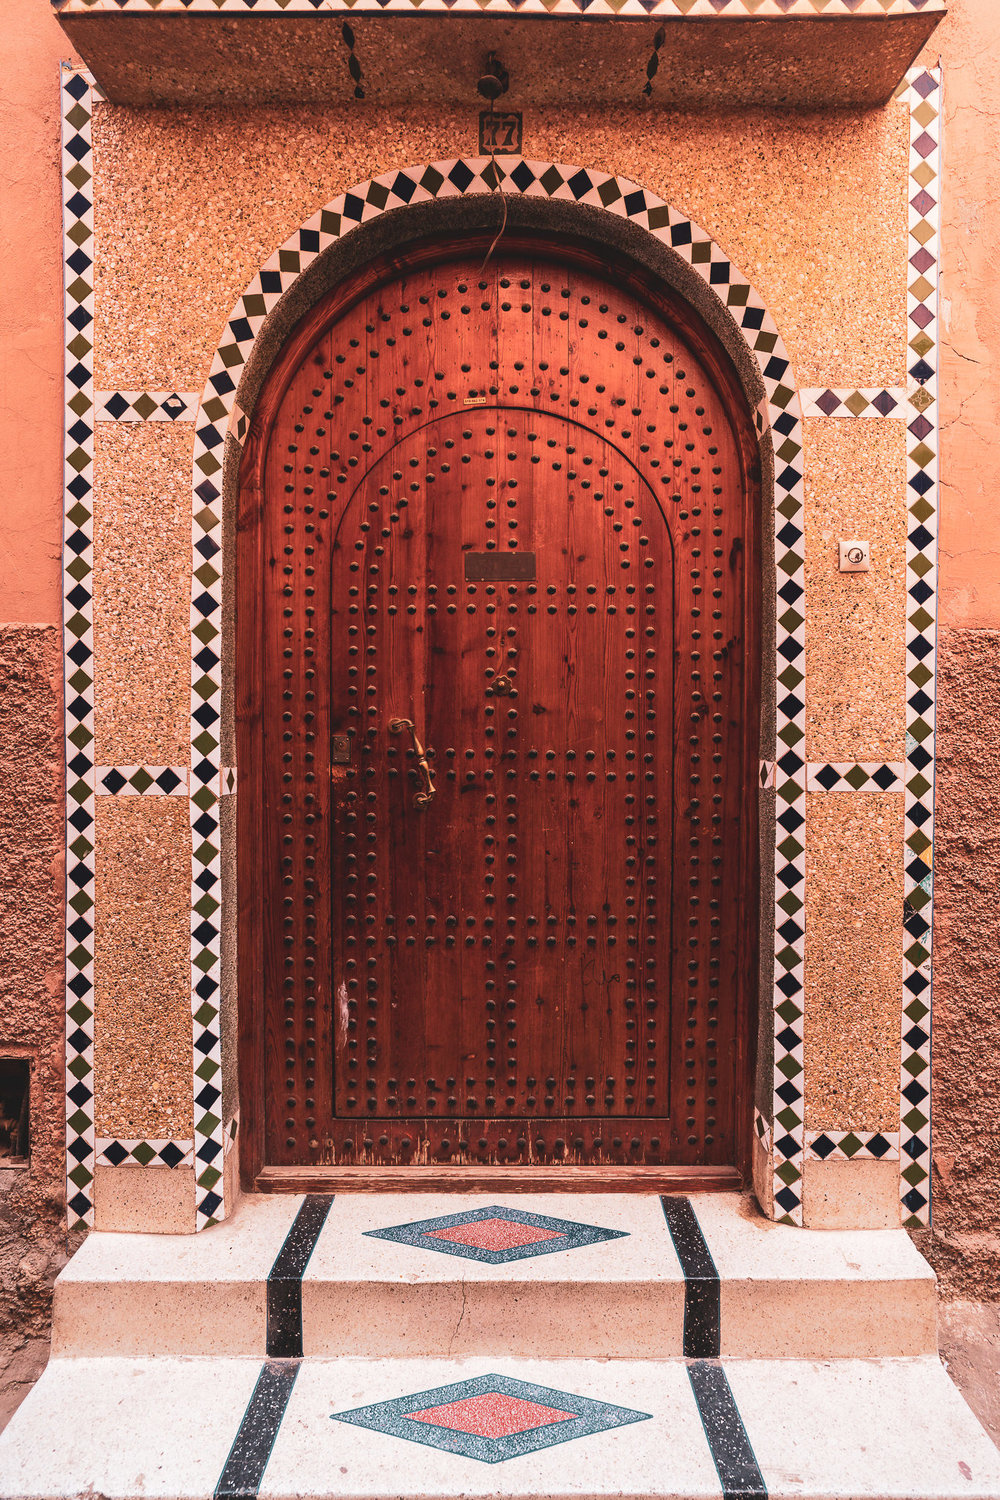 Marrakech ornate door #4